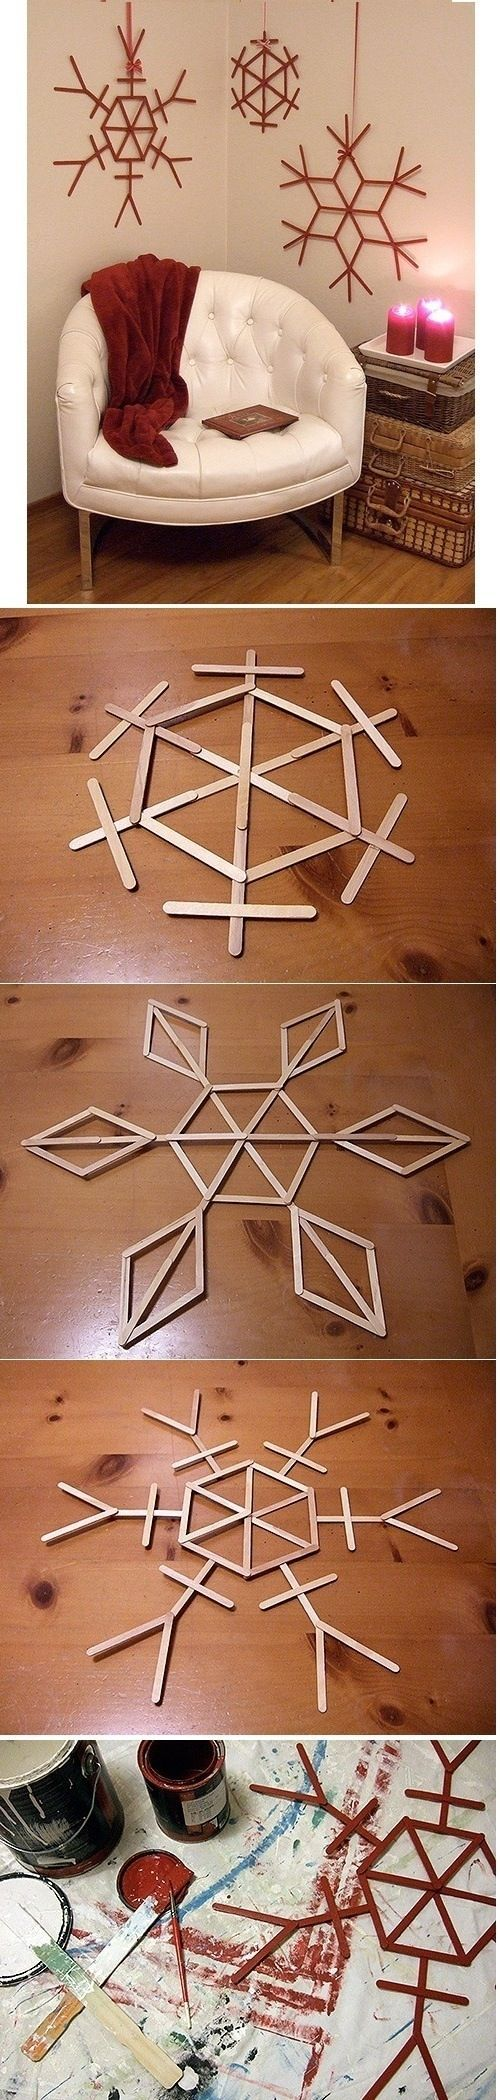 Popsicle snowflakes. It would be cute to hang them from the ceiling around the tree.